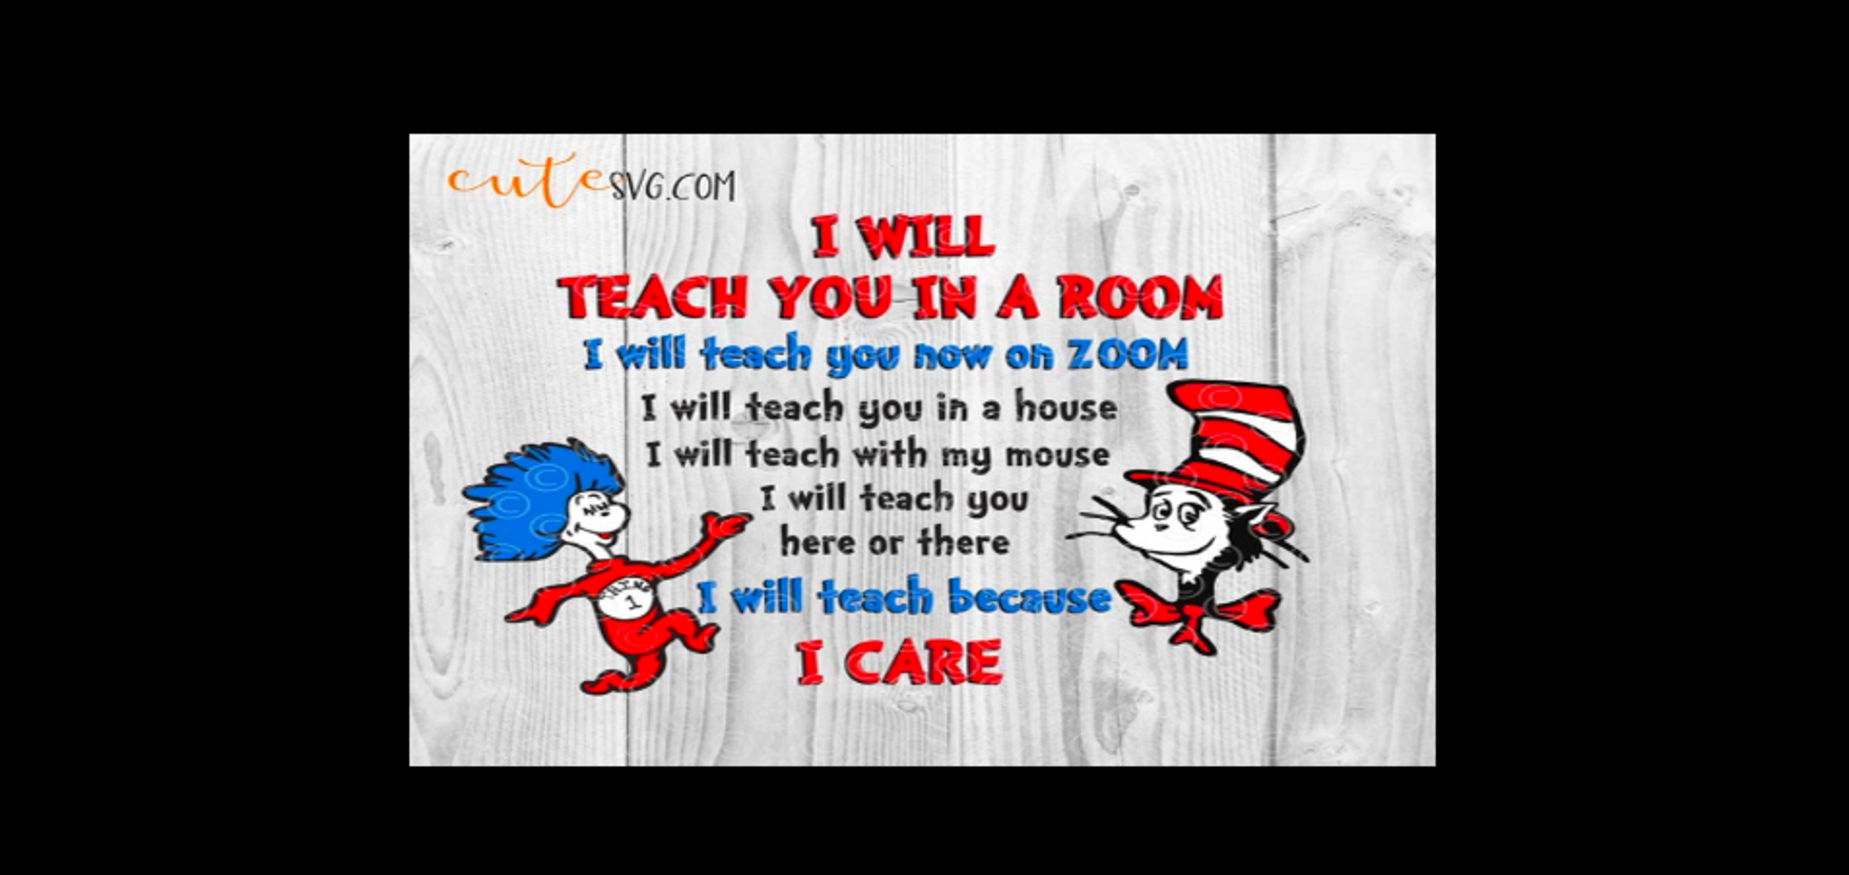 I will teach you in a Zoom